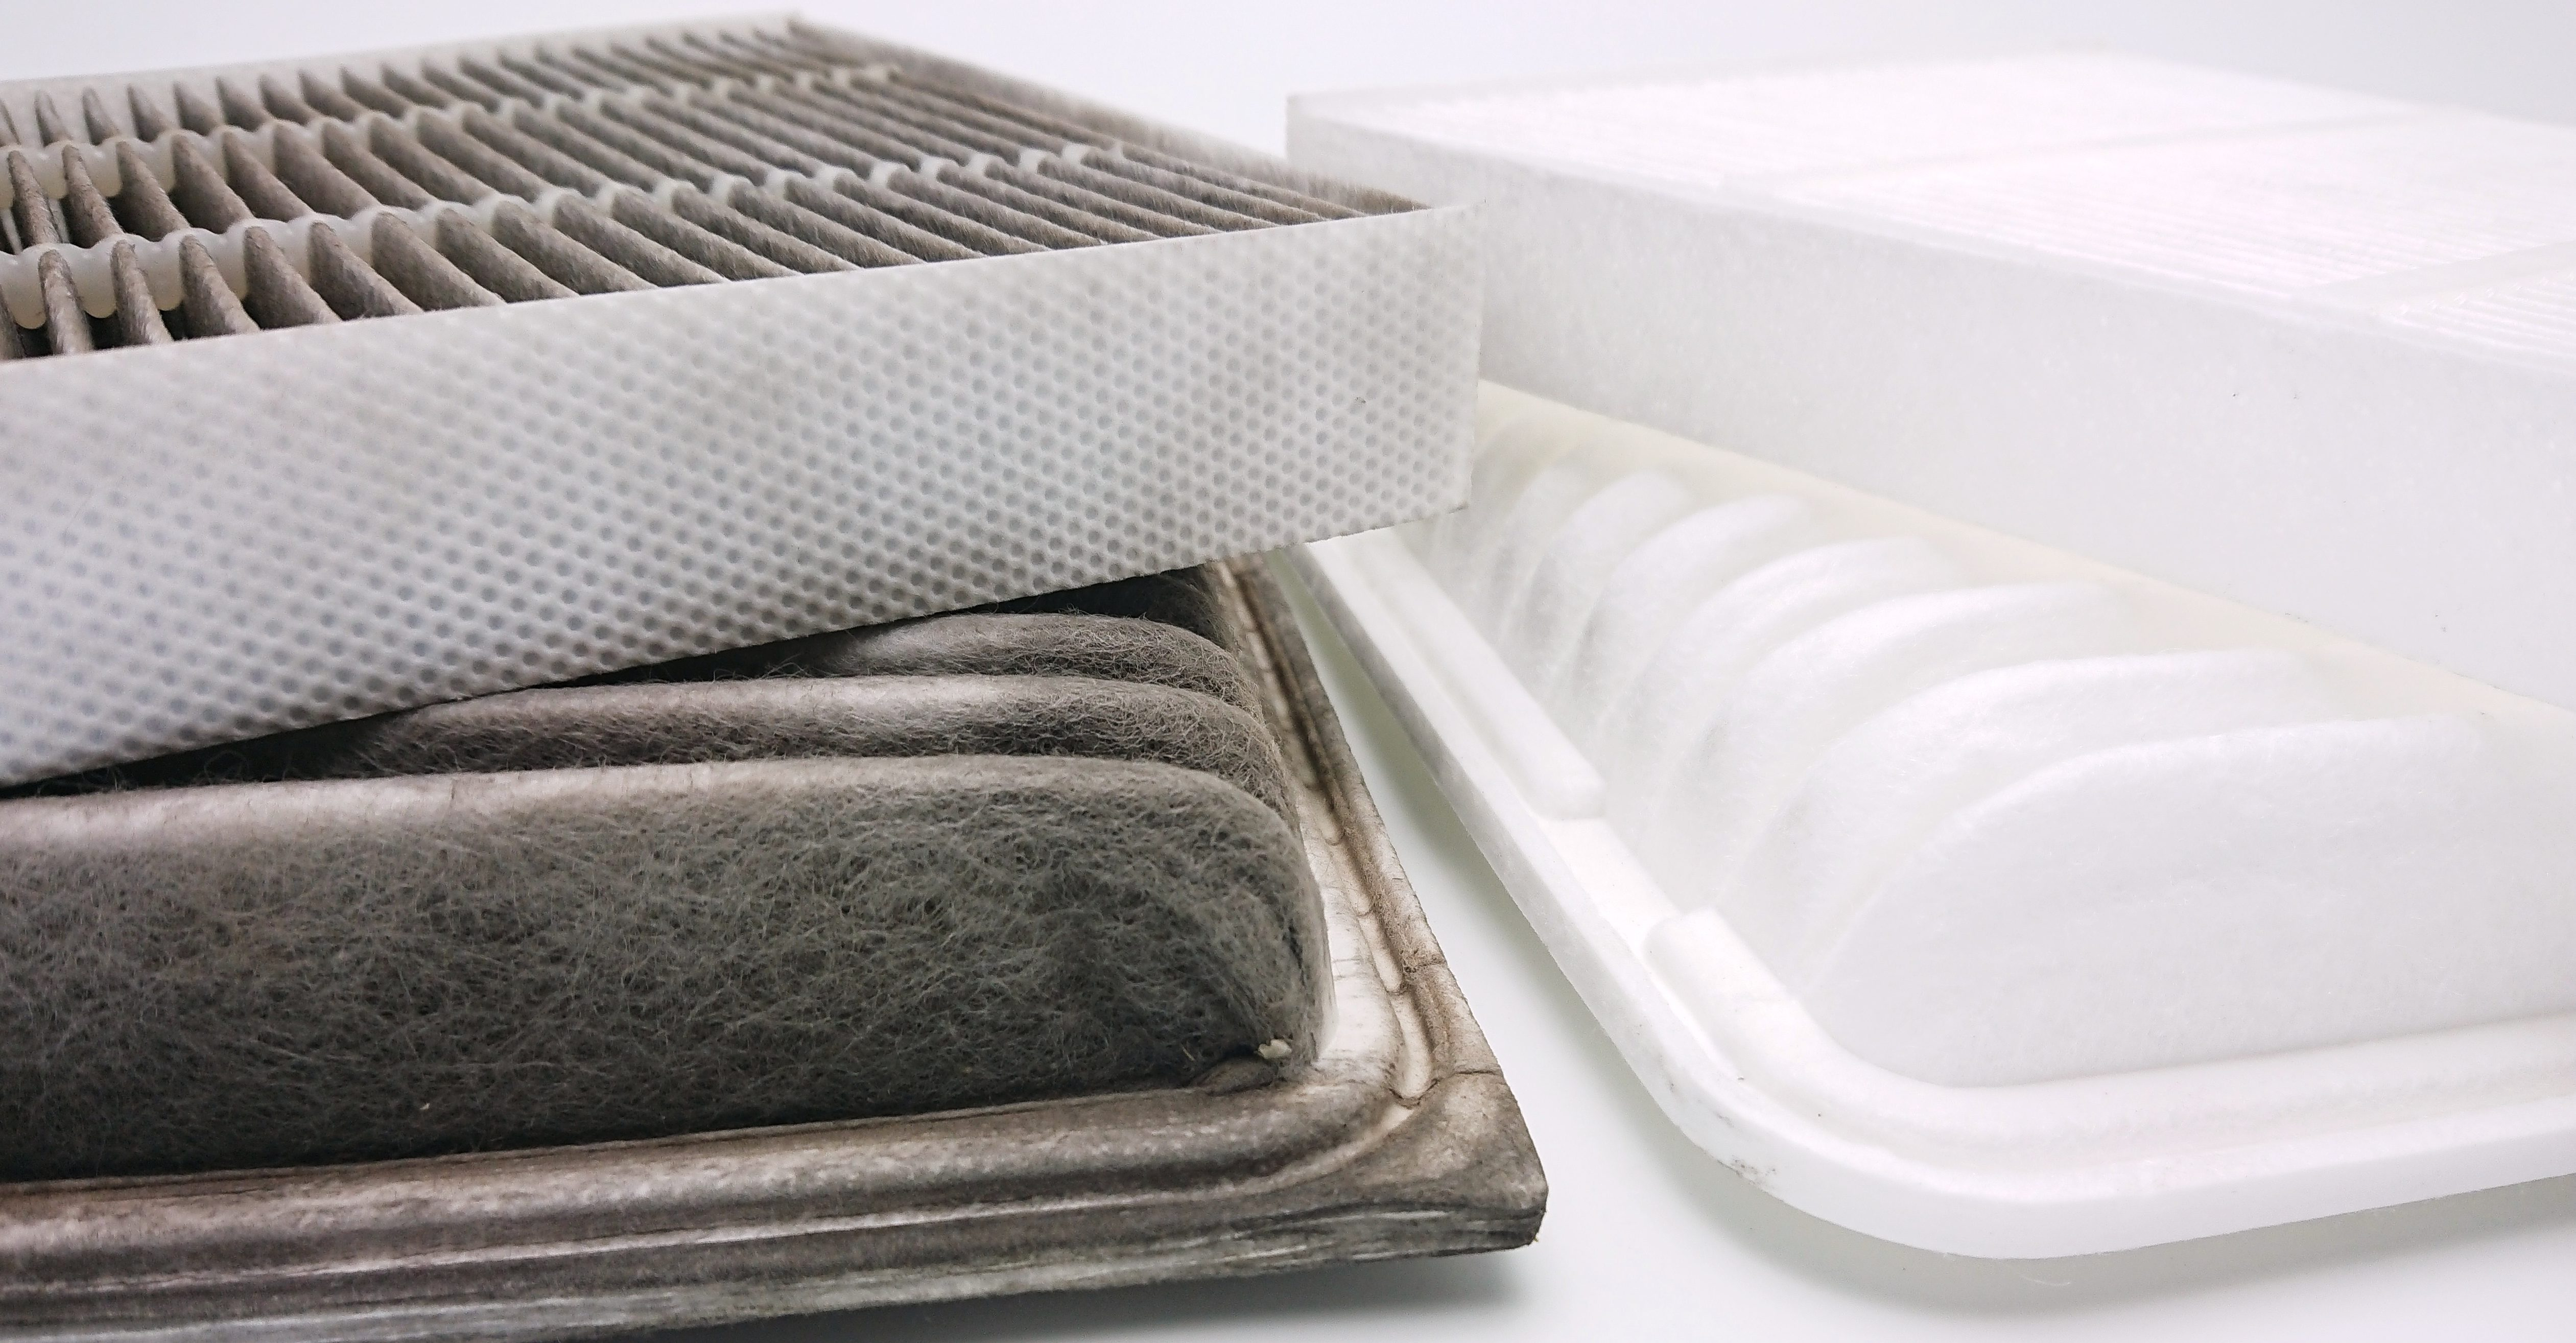 cabin-filters-5-things-to-know